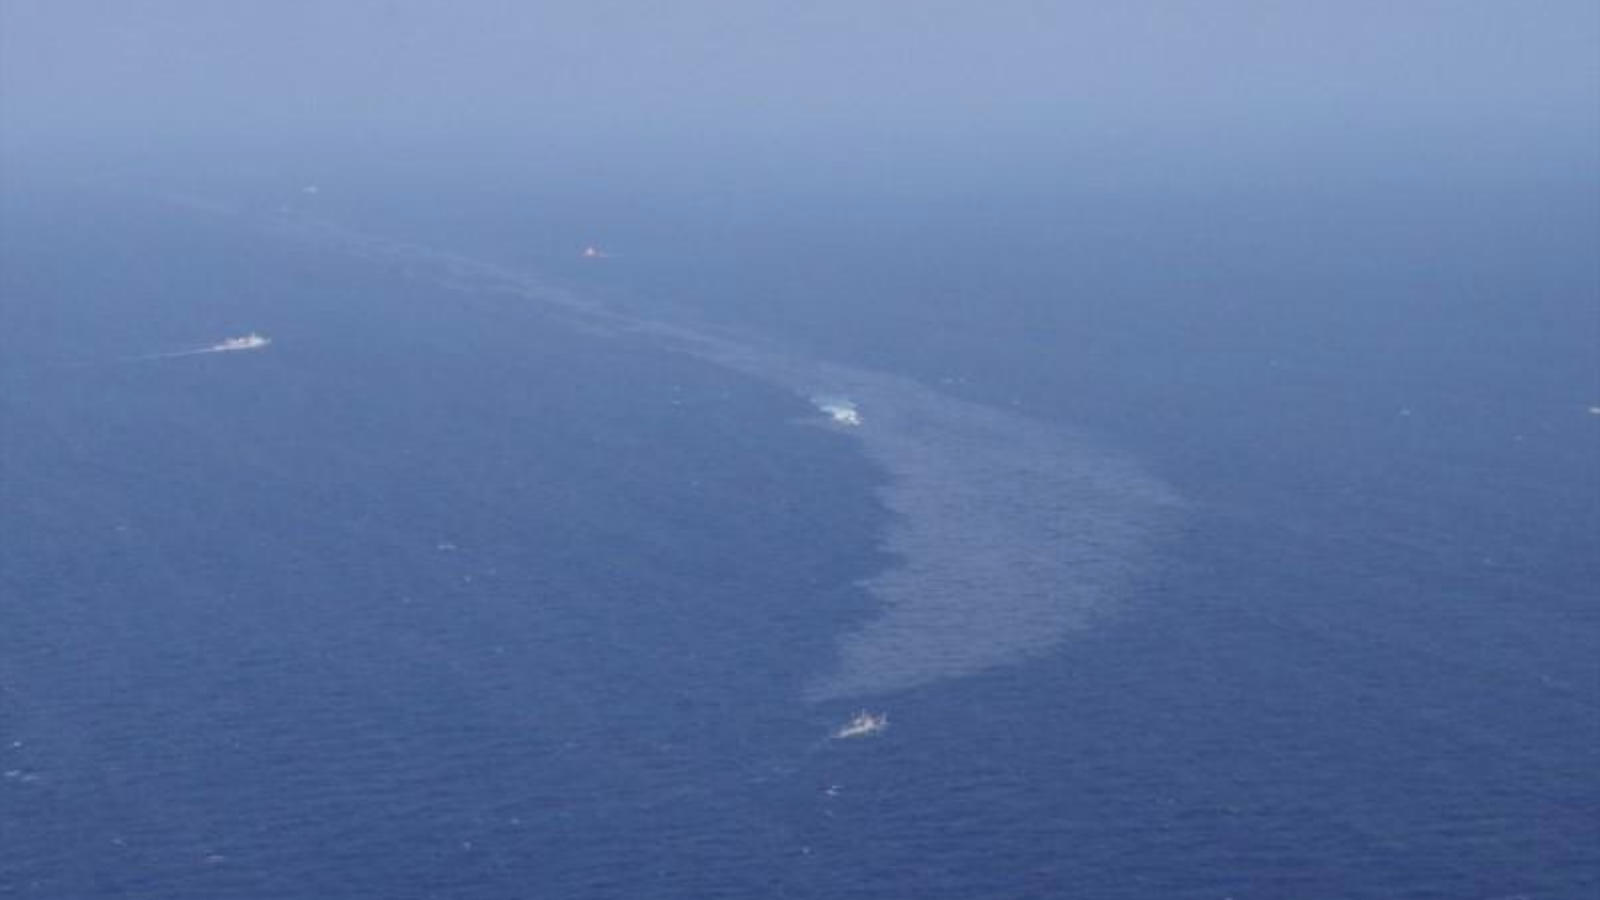 Oil on Japanese Beaches Linked to Last Month's Sanchi Tanker Spill